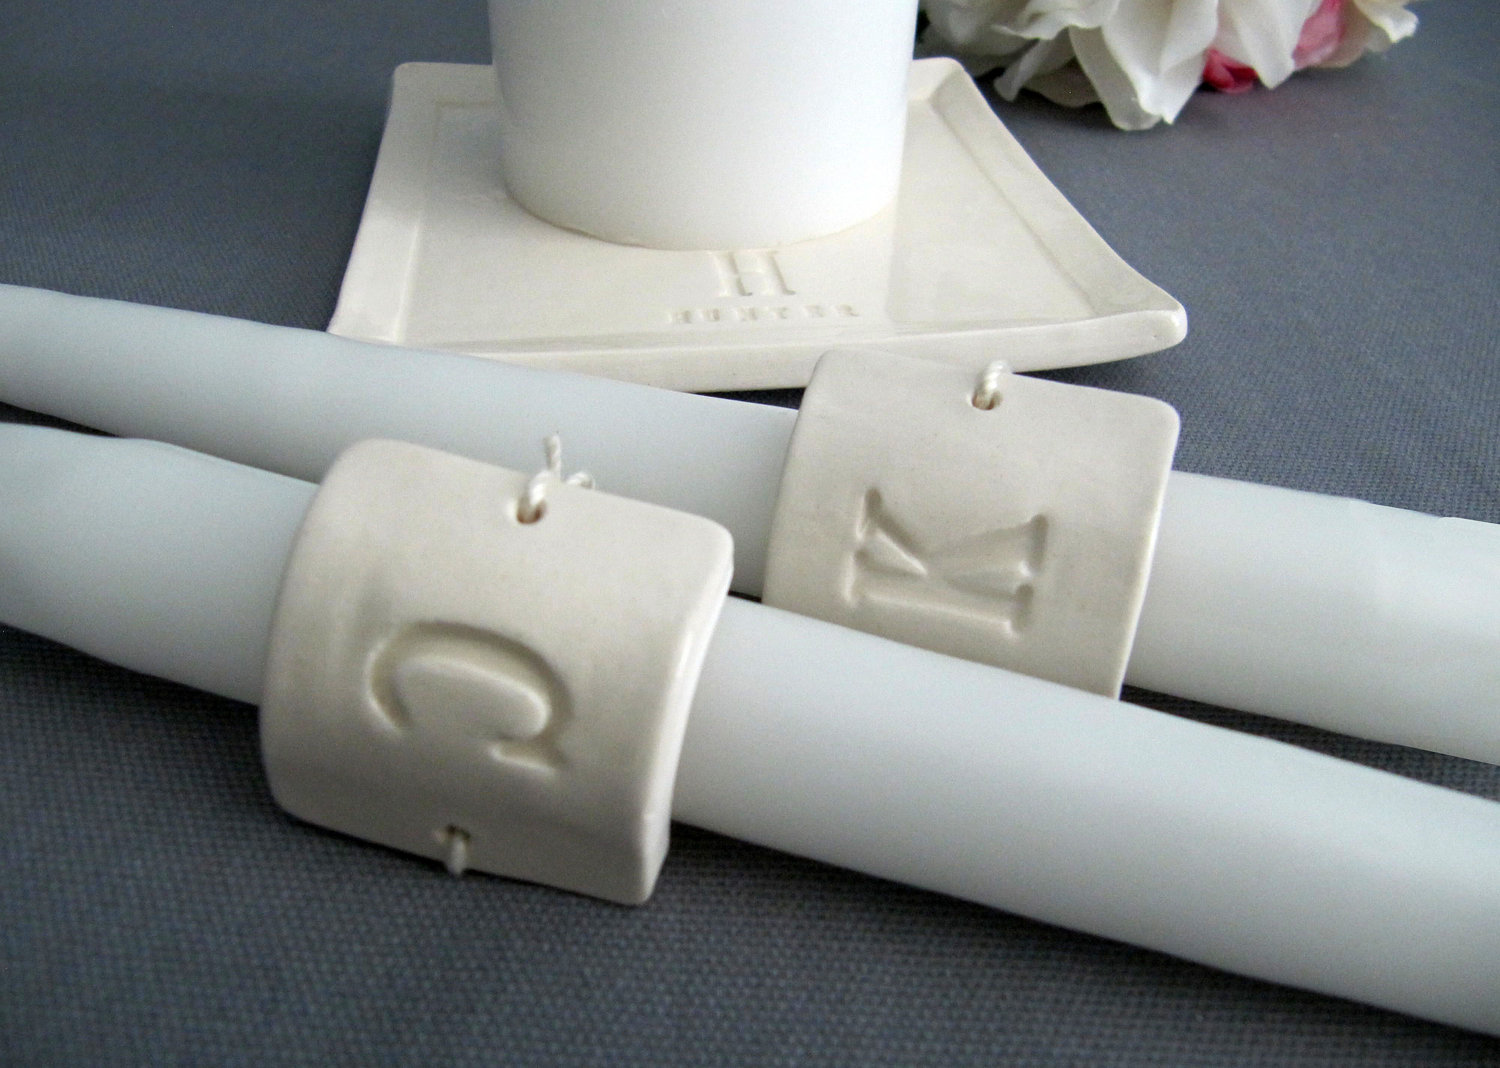 Square Personalized Unity Candle Ceremony Set Monogrammed Gift Boxed From Susabella